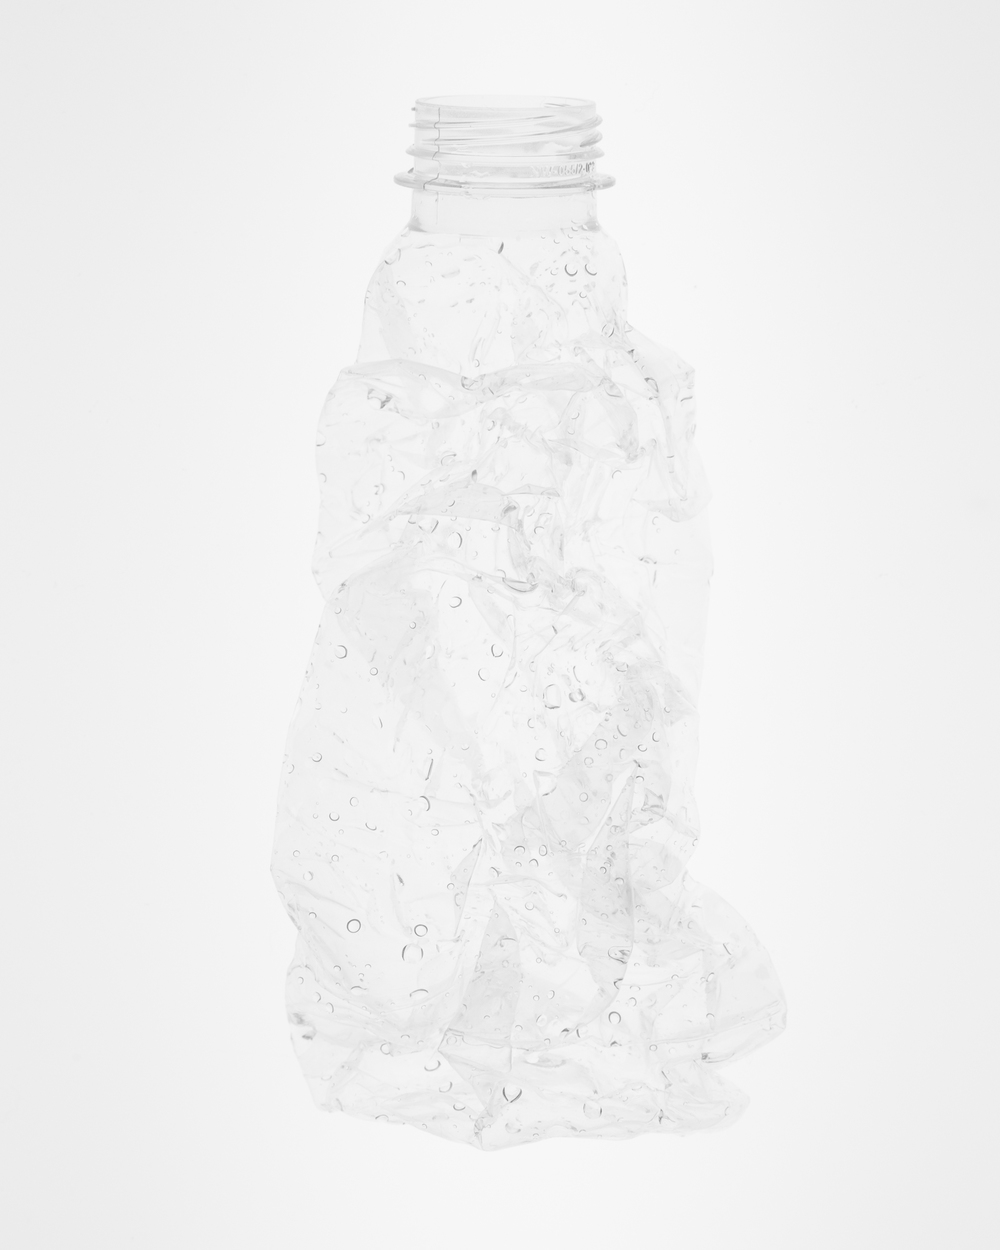 Bottle No.16, 10x8, Inkjet Print, 2014